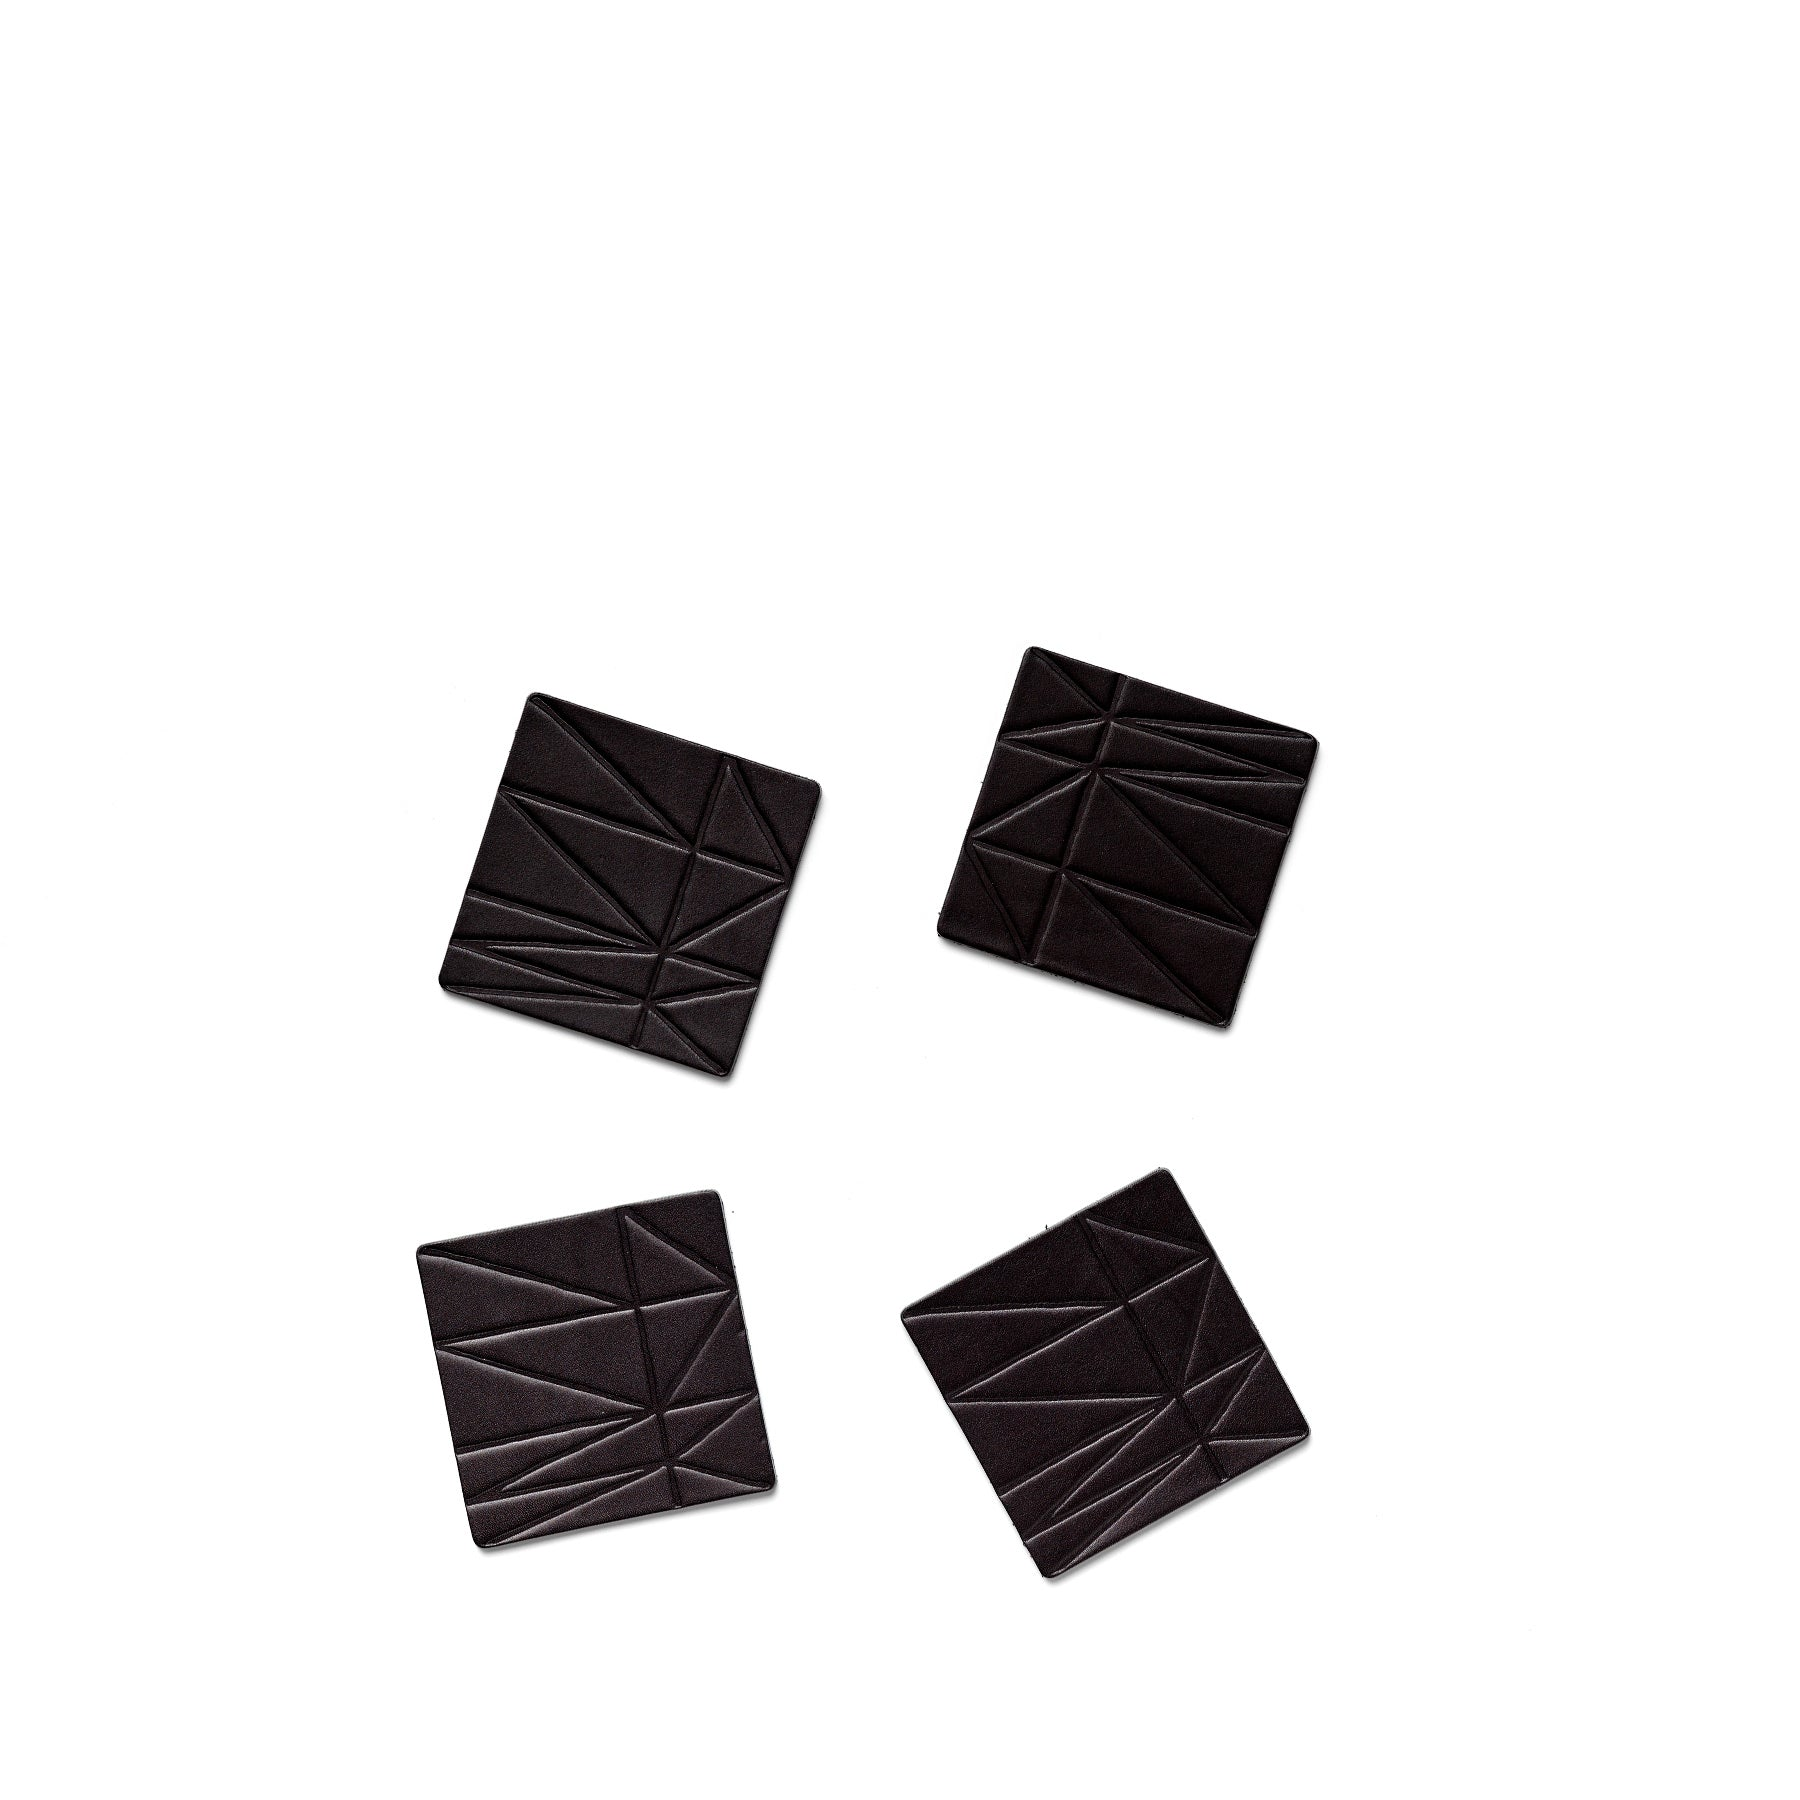 Strike Leather Coasters in Black (Set of 4) Zoom Image 1